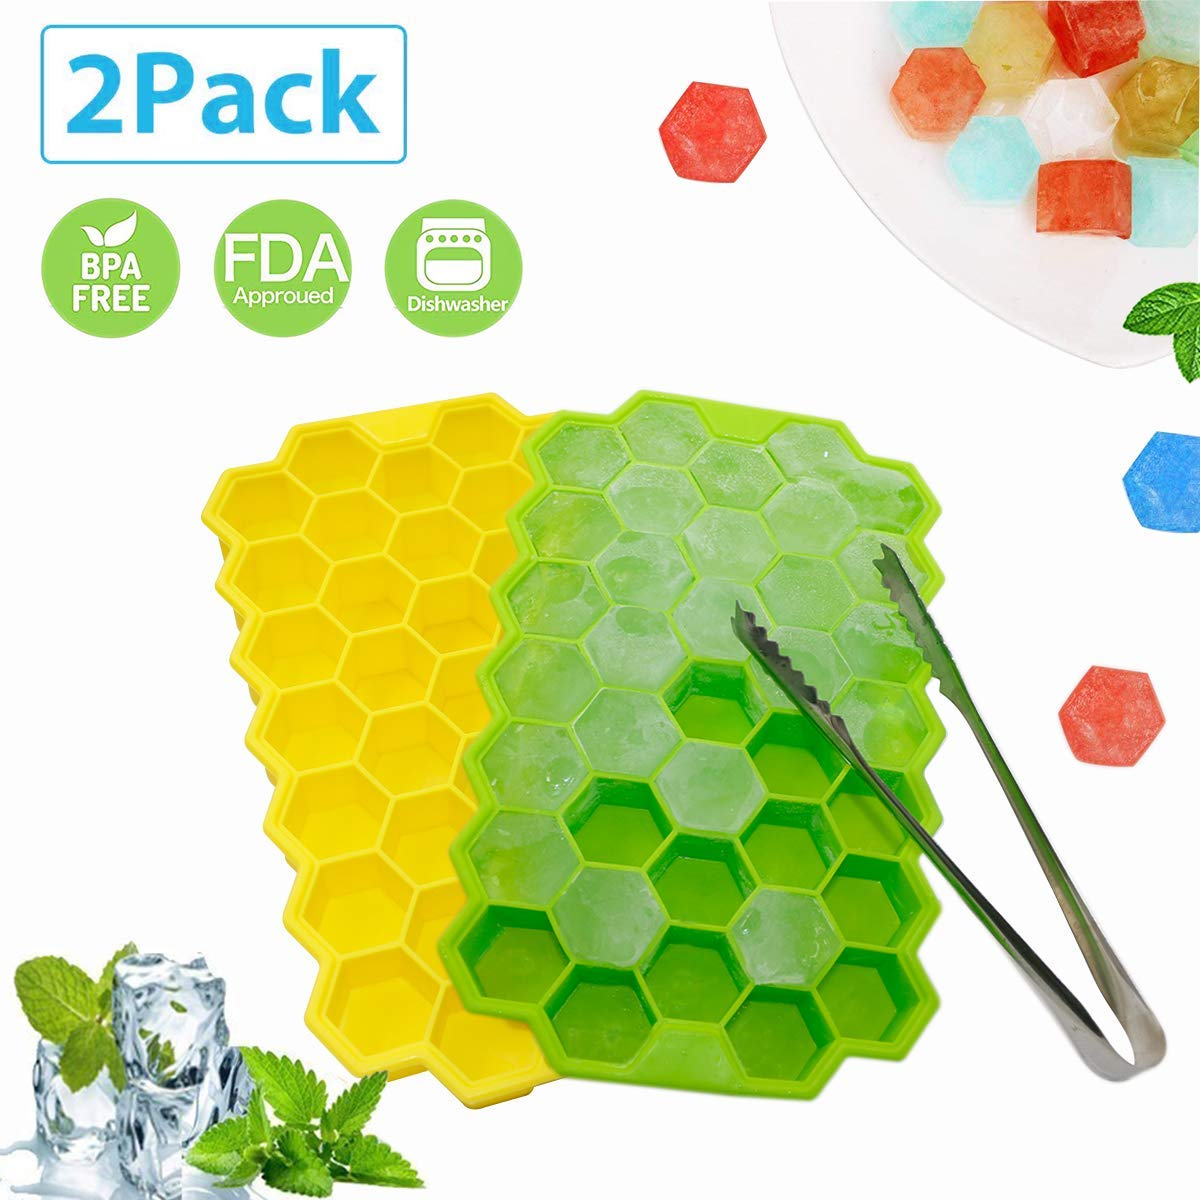 2 Pack Silicone Ice Cube Trays with Removable Lid, Easy Release Honeycomb Shape Ice Molds and Stainless Steel Ice Tongs,BPA Free Stackable Durable and Dishwasher Safe